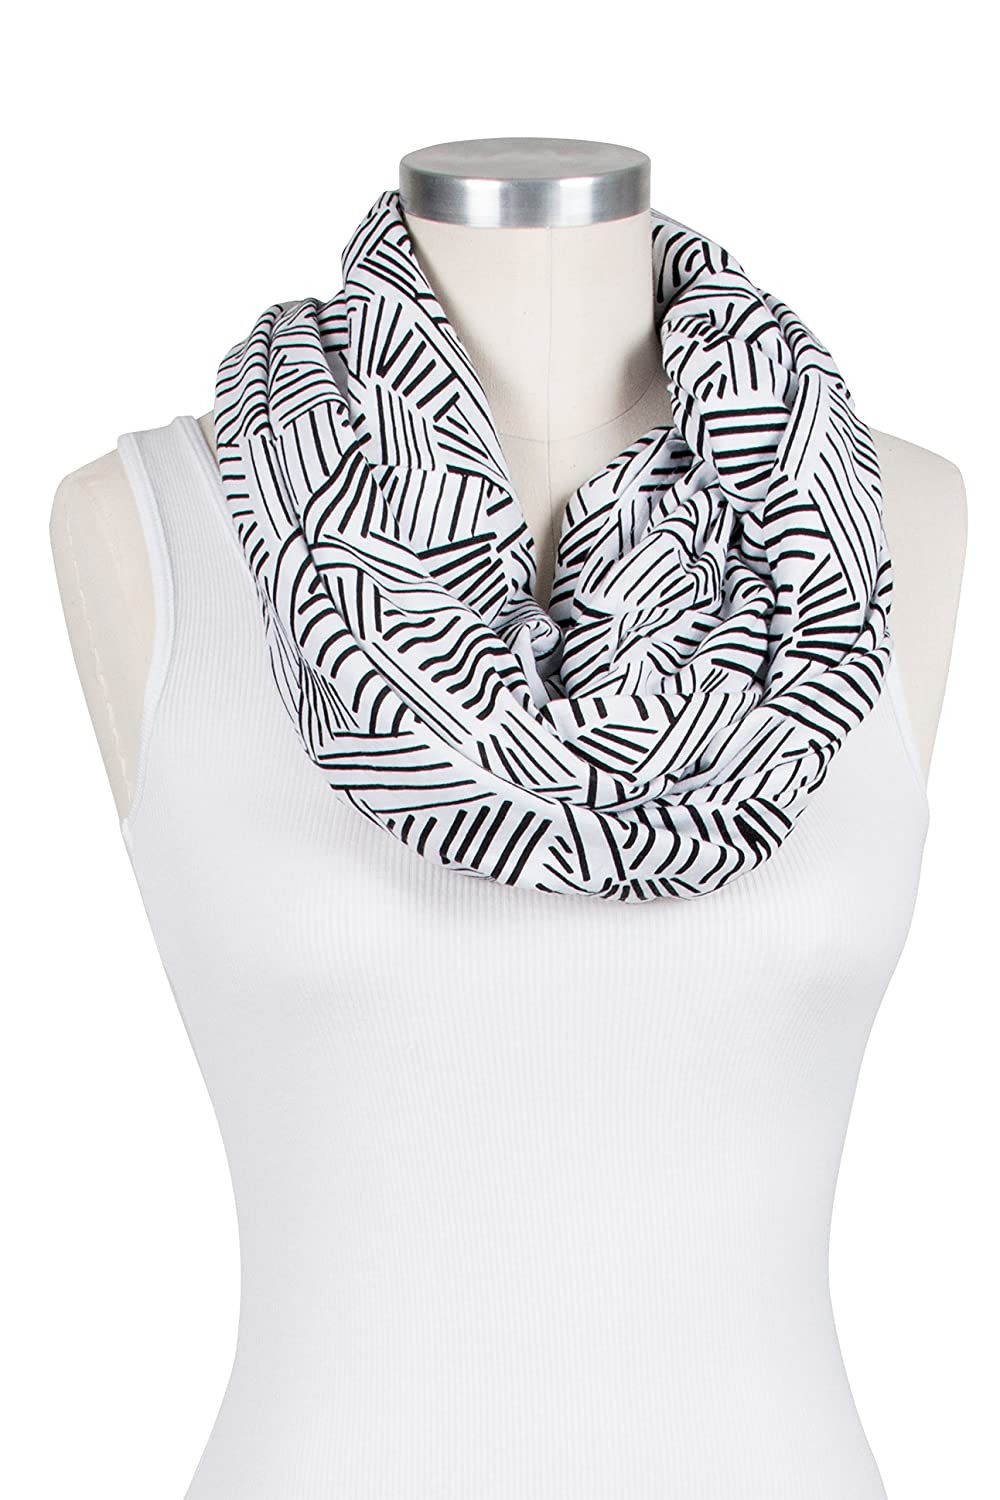 Bebe au Lait Premium Cotton Jersey Nursing Scarf, Lexington SFBJLX